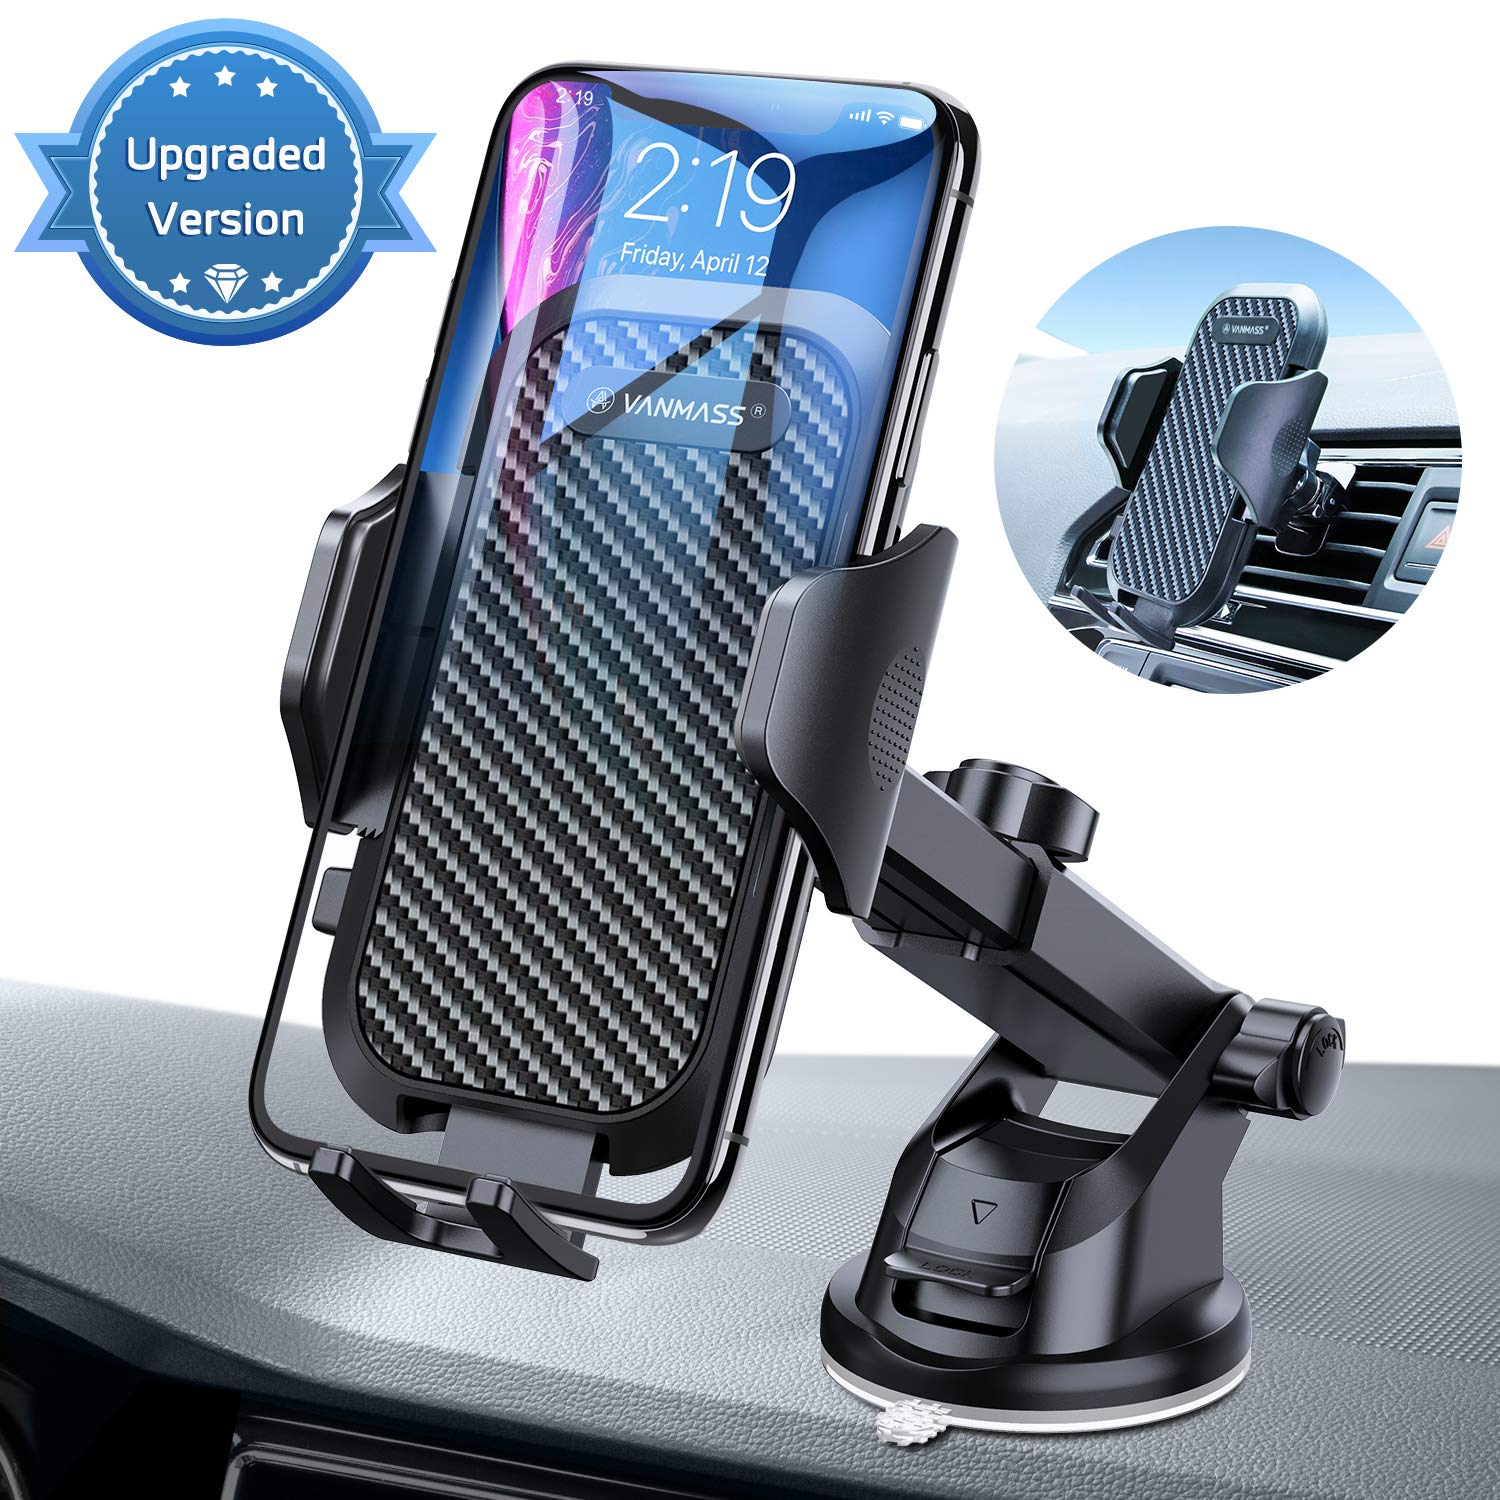 VANMASS Upgraded Car Phone Mount, Dashboard Air Vent Cell Phone Holder for Car with Telescopic Arm & Dashboard Pad, Strong Sticky Suction, One Button Release Car Cradle, Compatible iPhone Samsung by VANMASS